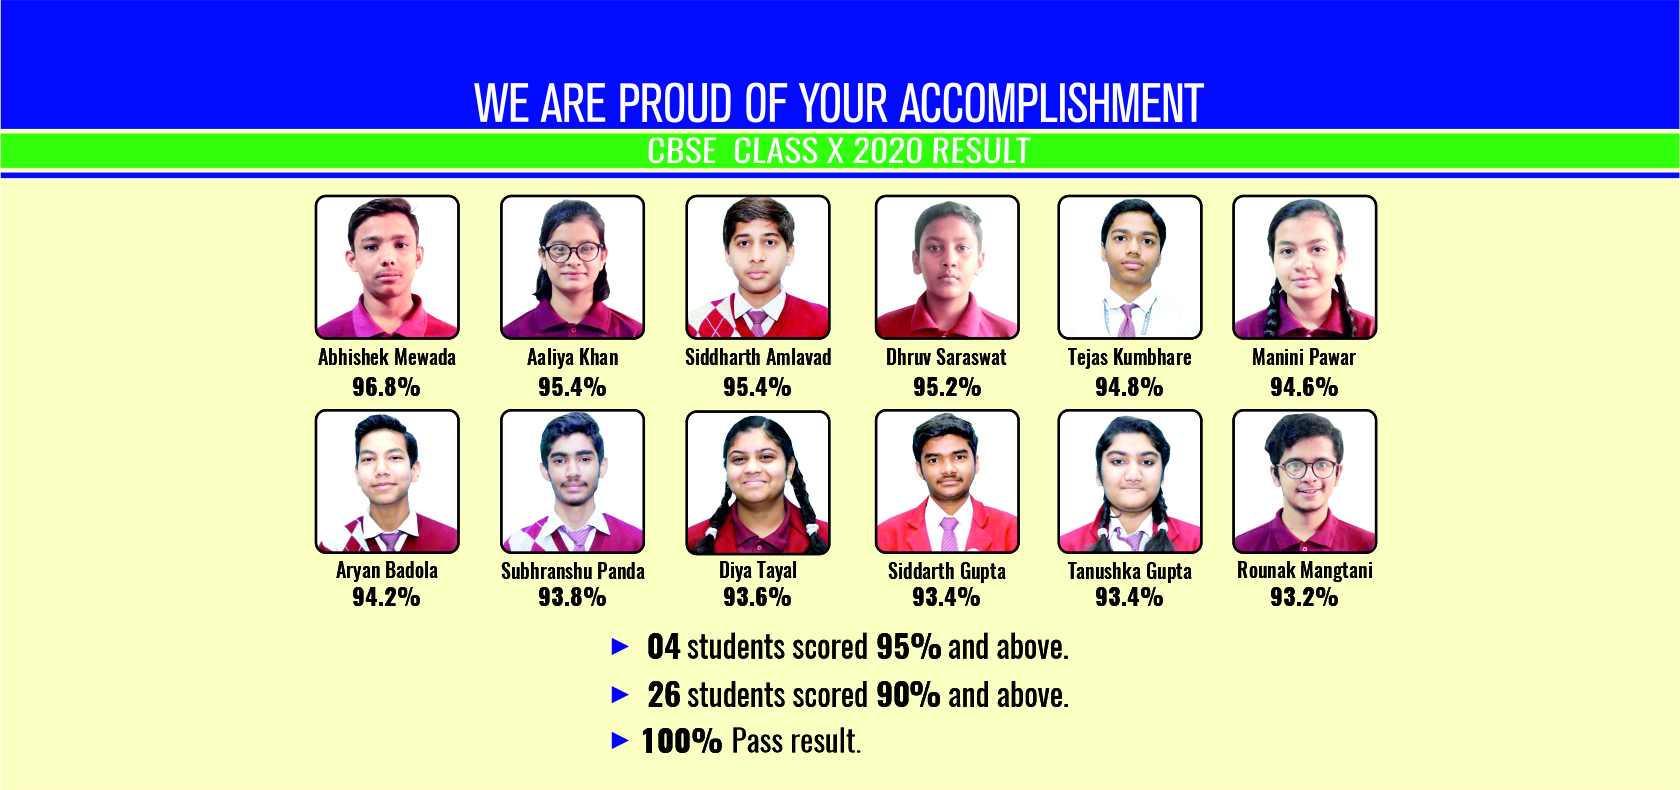 bhopal best school, bhopal top school,  sagar public school, best school in bhopal